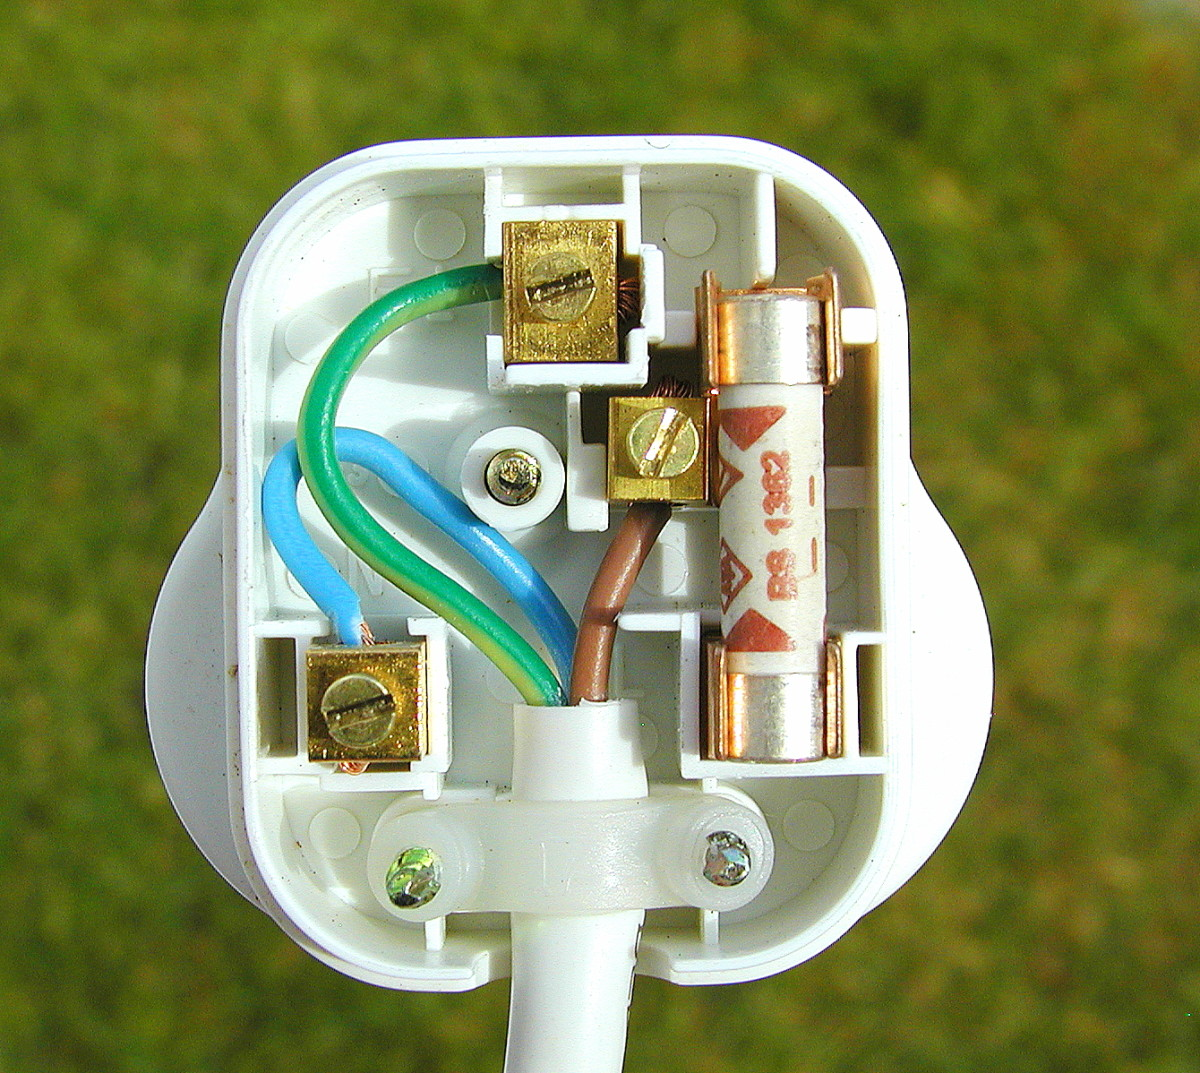 9 Steps to Wiring a UK Plug Correctly and Safely